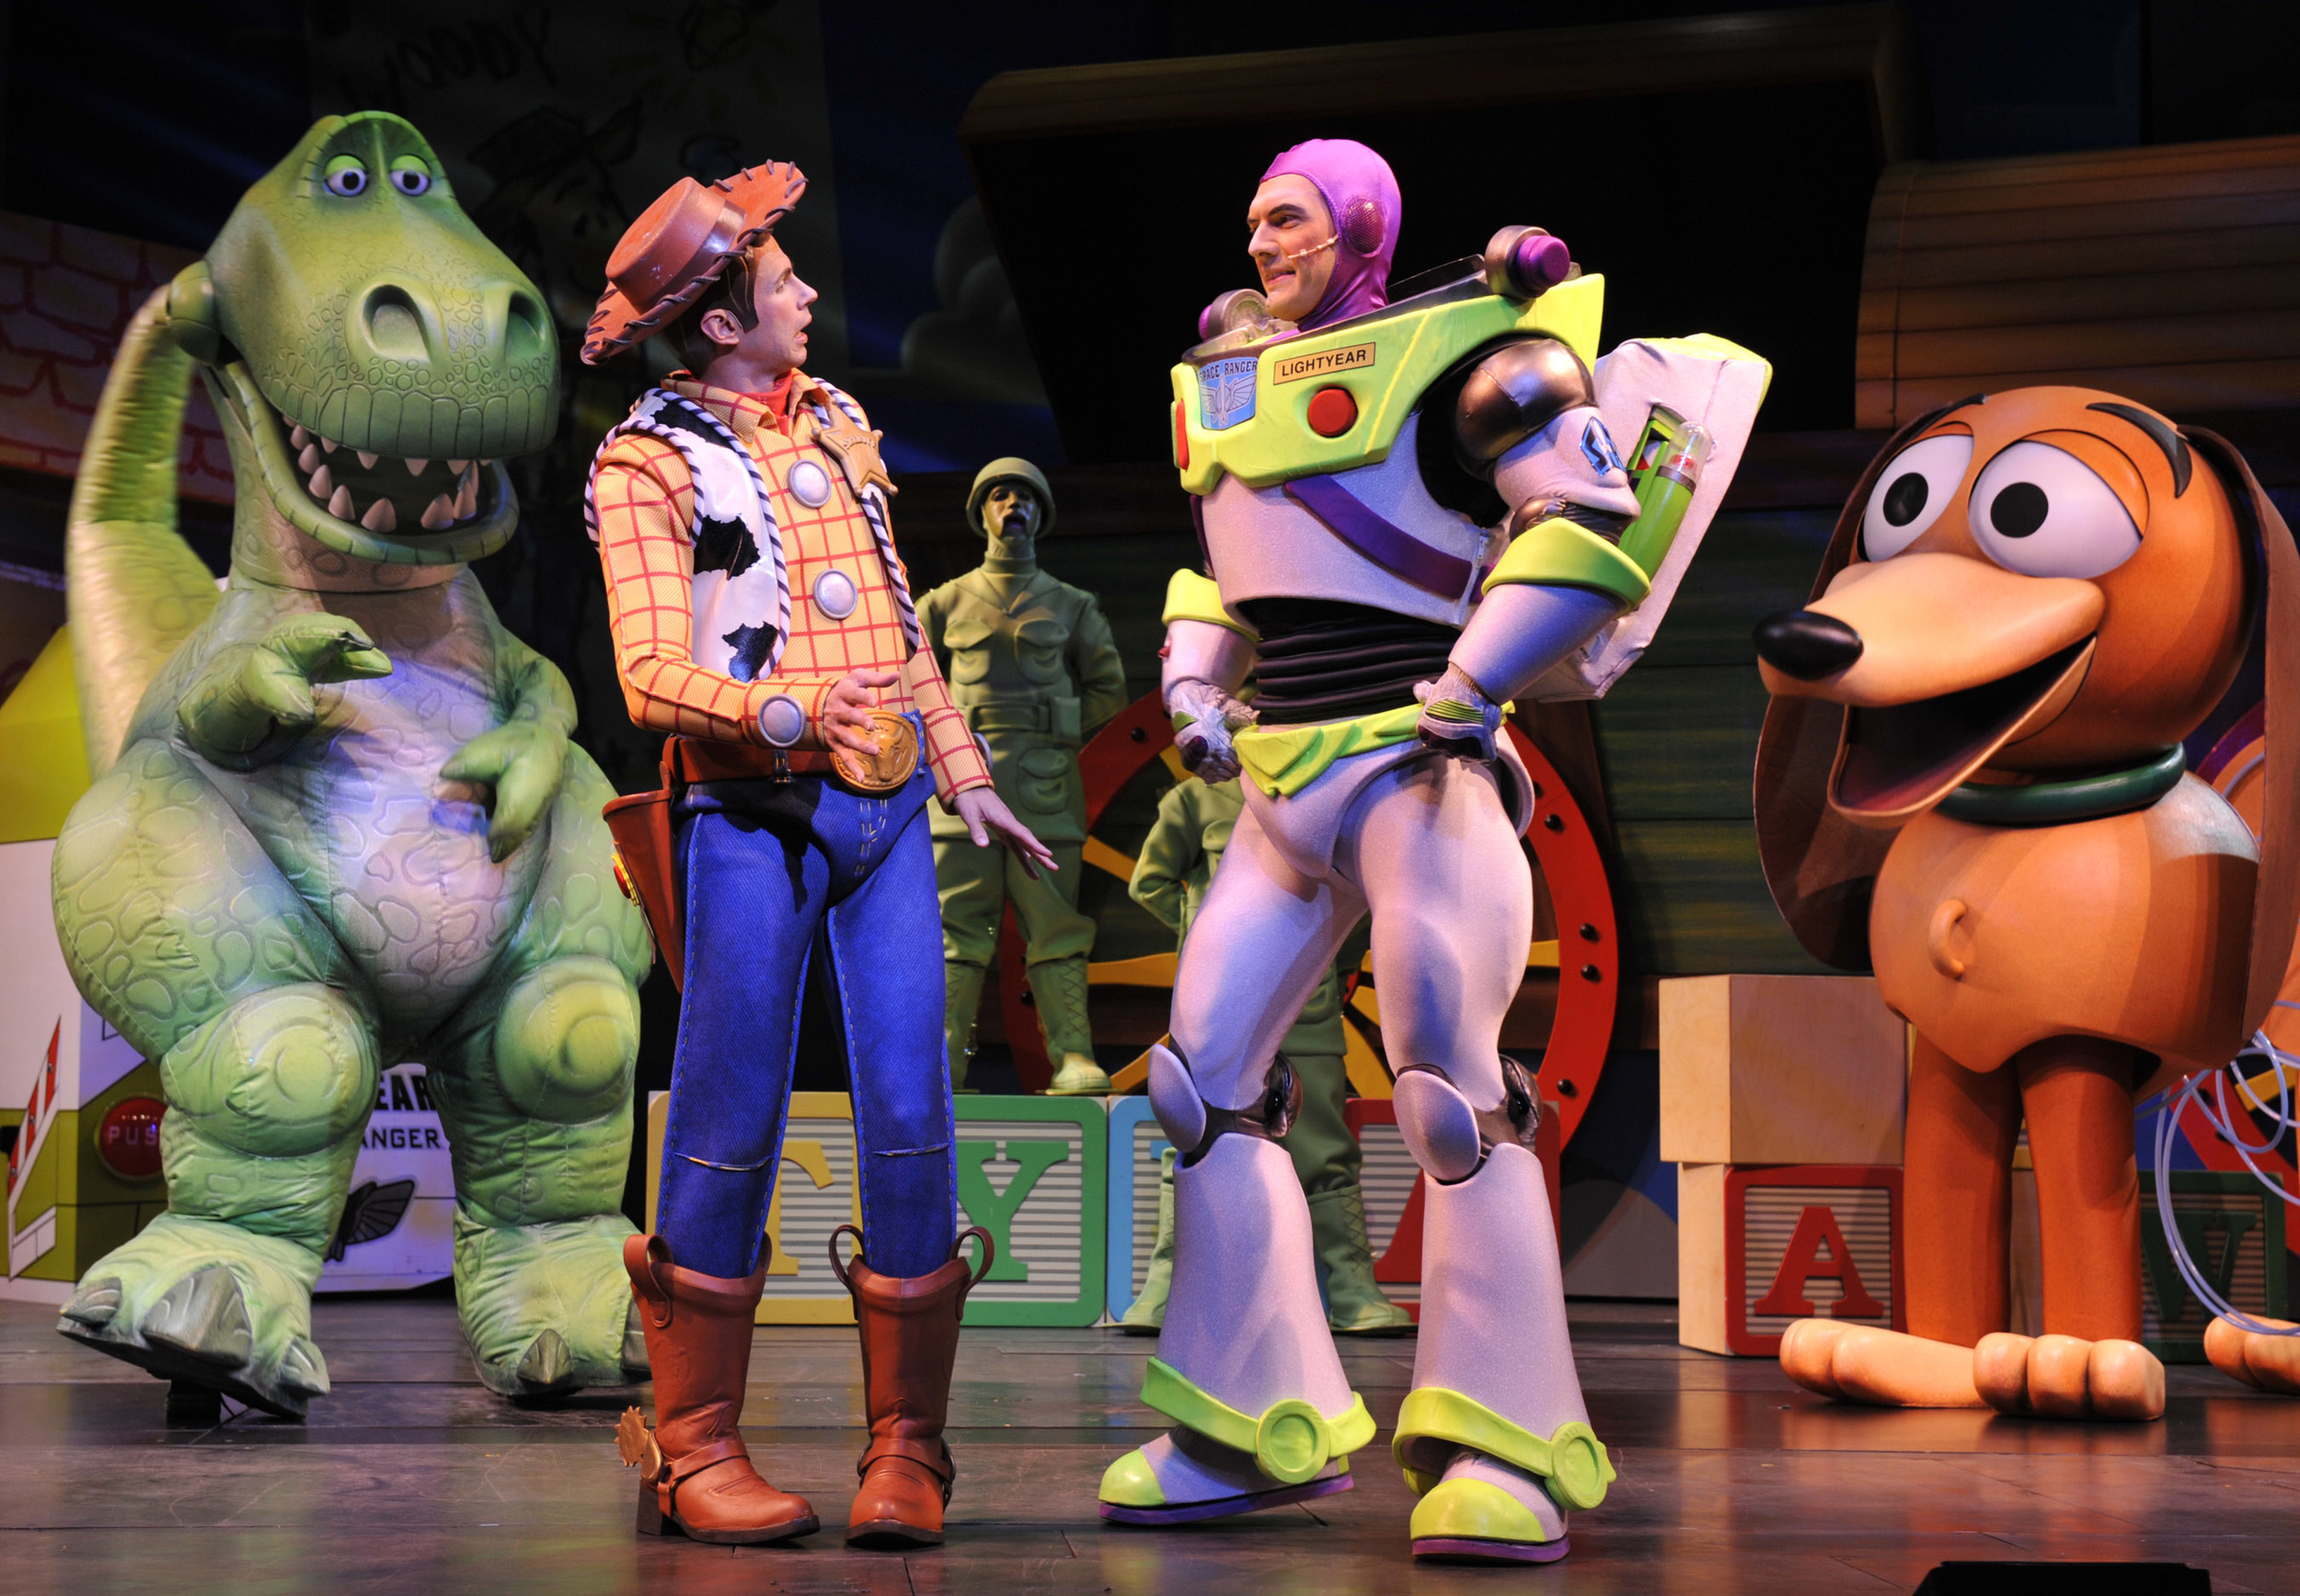 Toy Story - The Musical